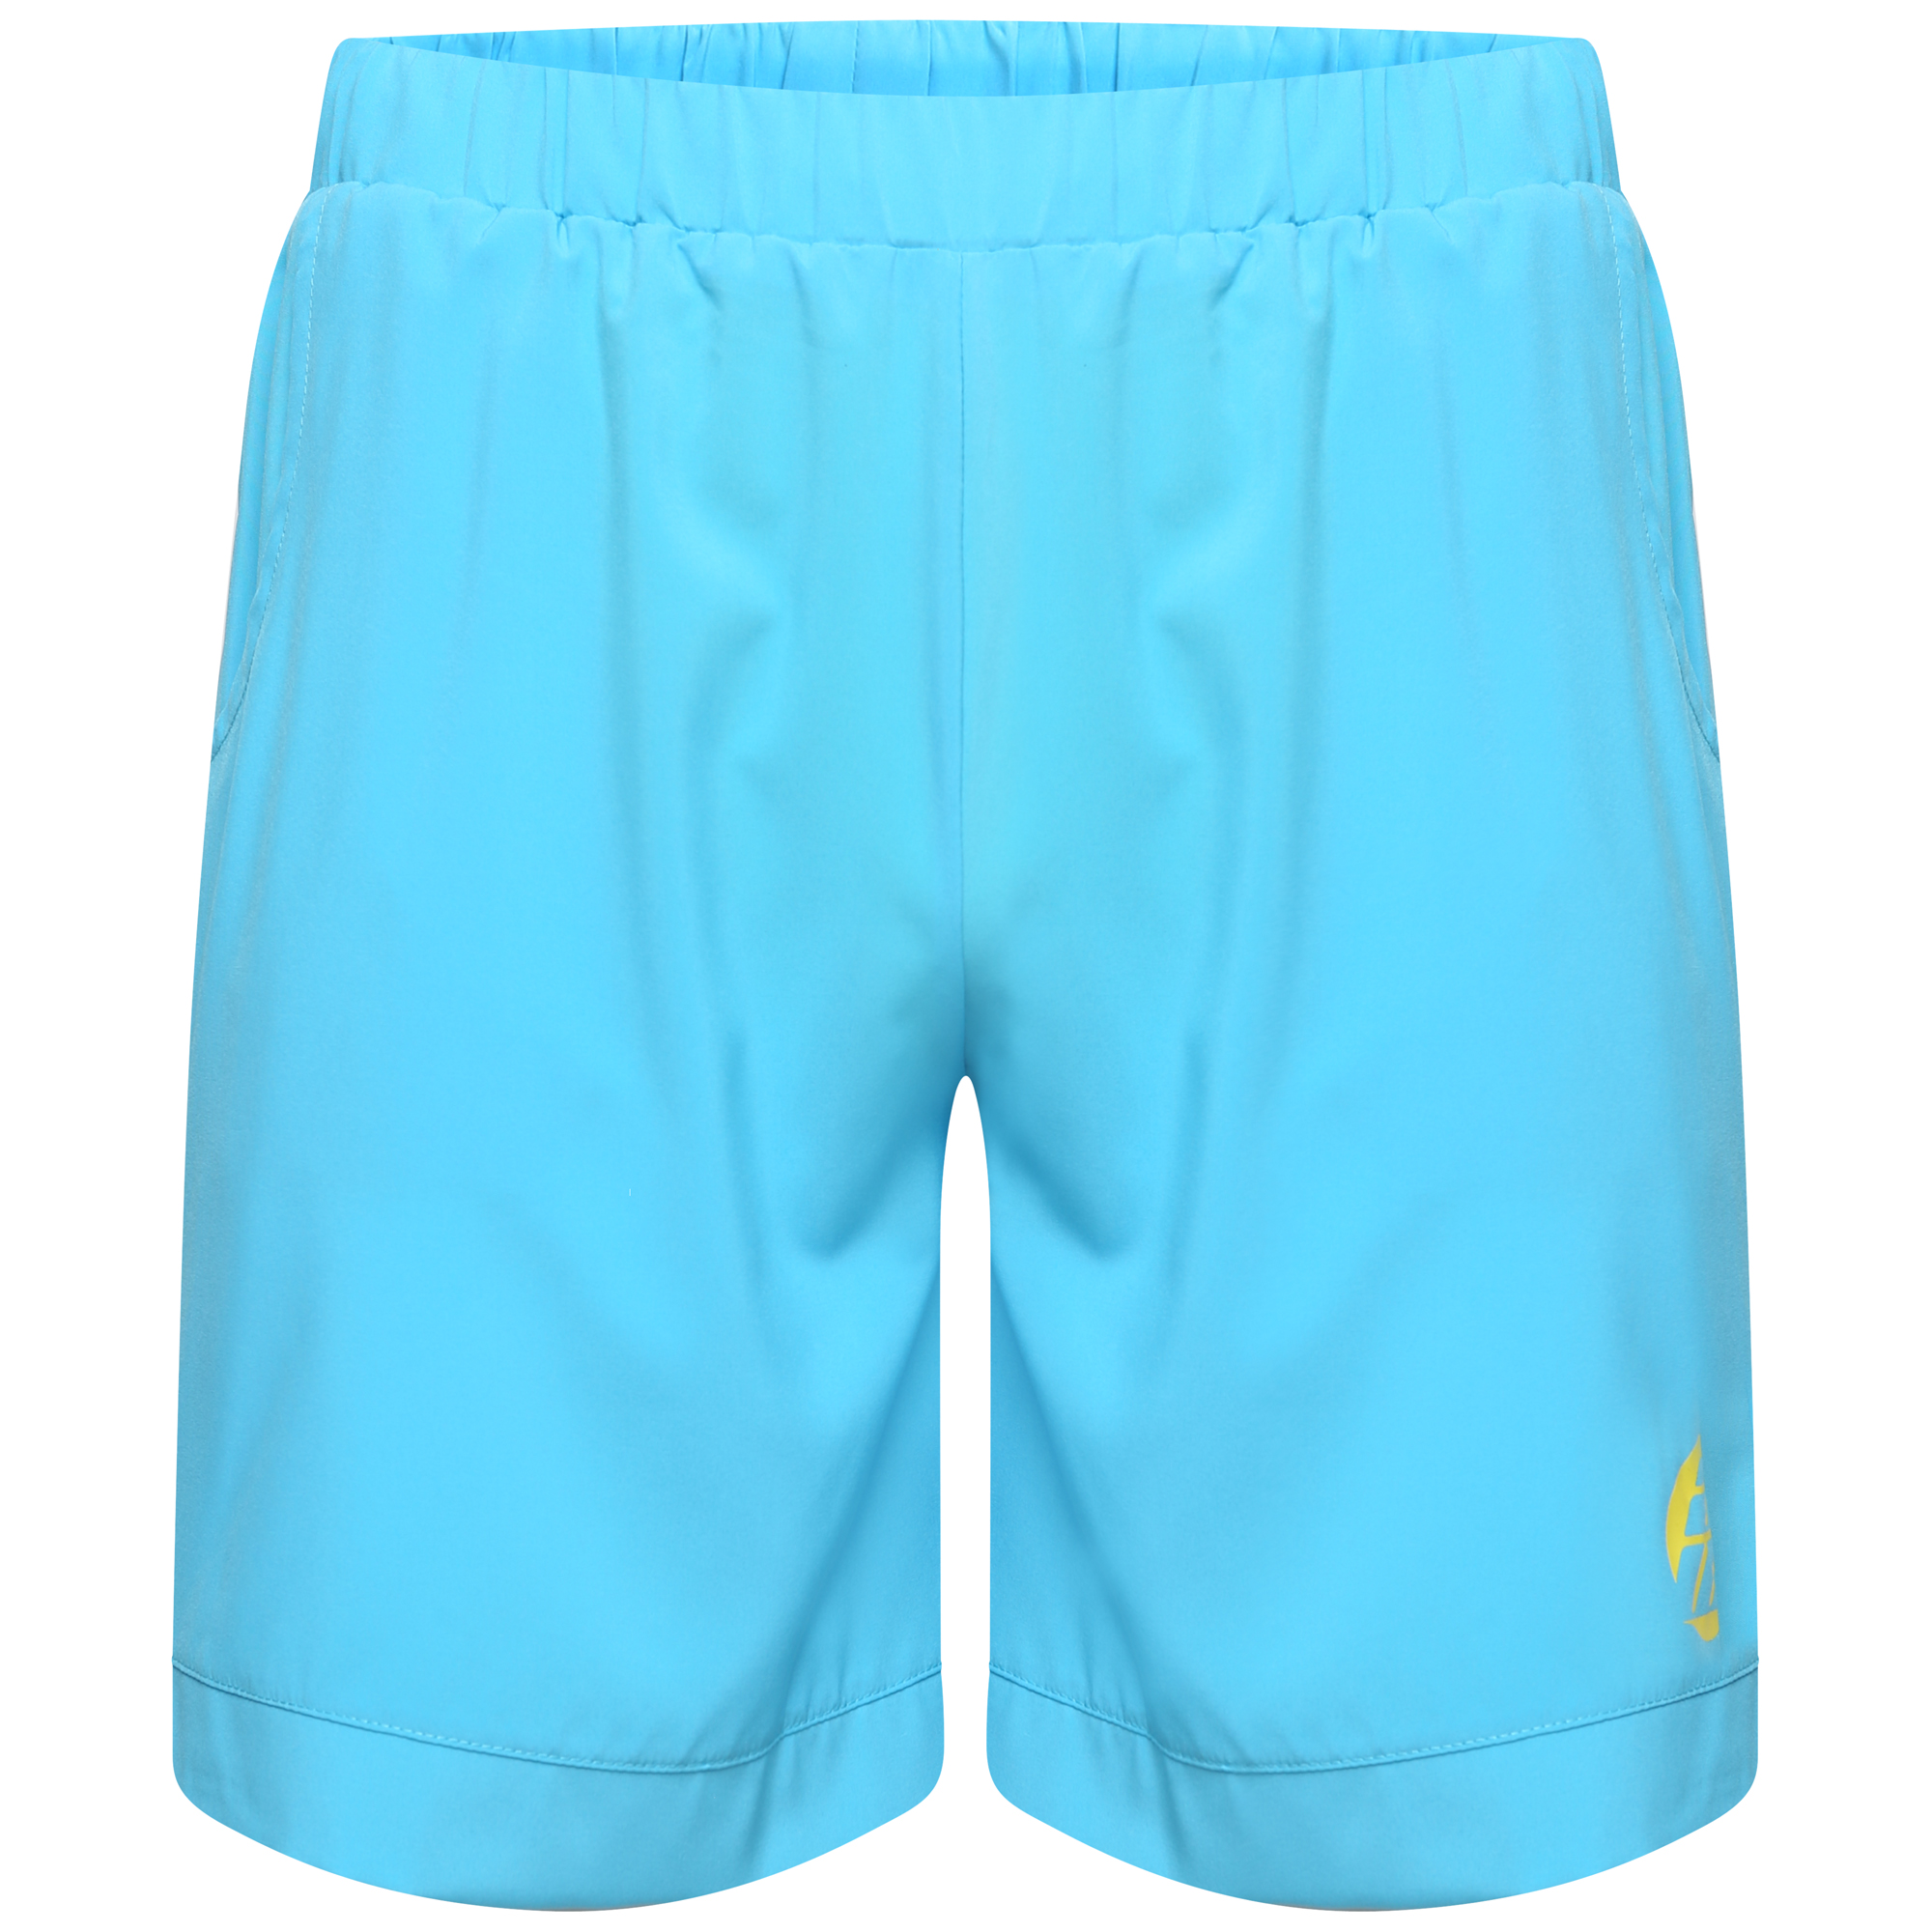 AWsome Blue Power Shorts